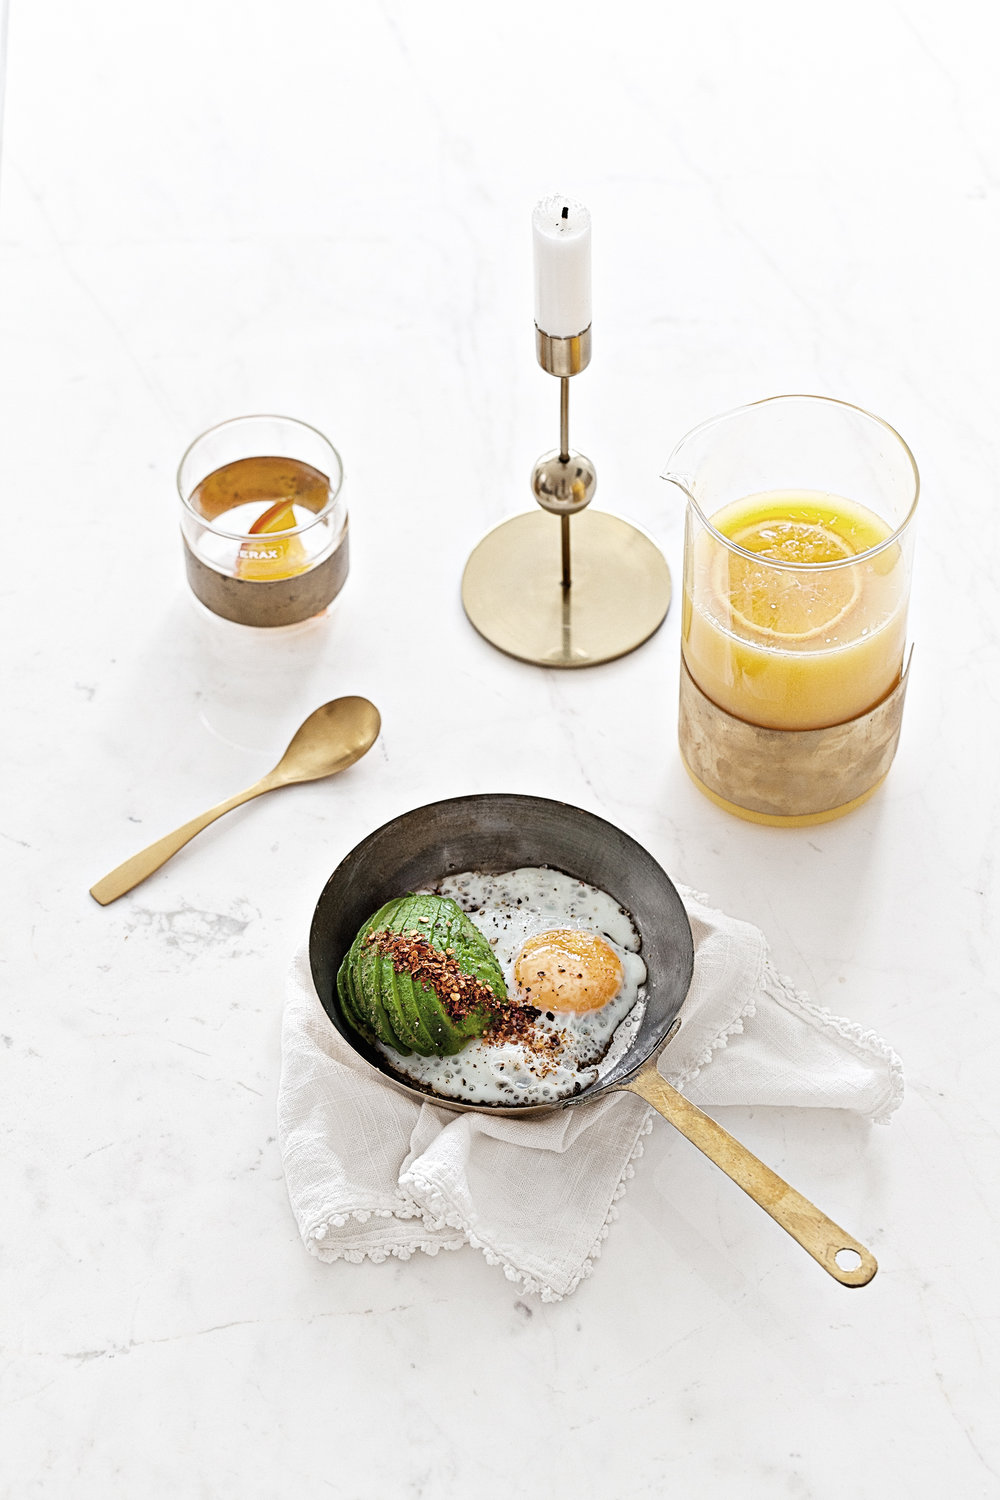 Avocado & Egg | Brass Carafe & Glass by Niels Datema for Serax Belgium